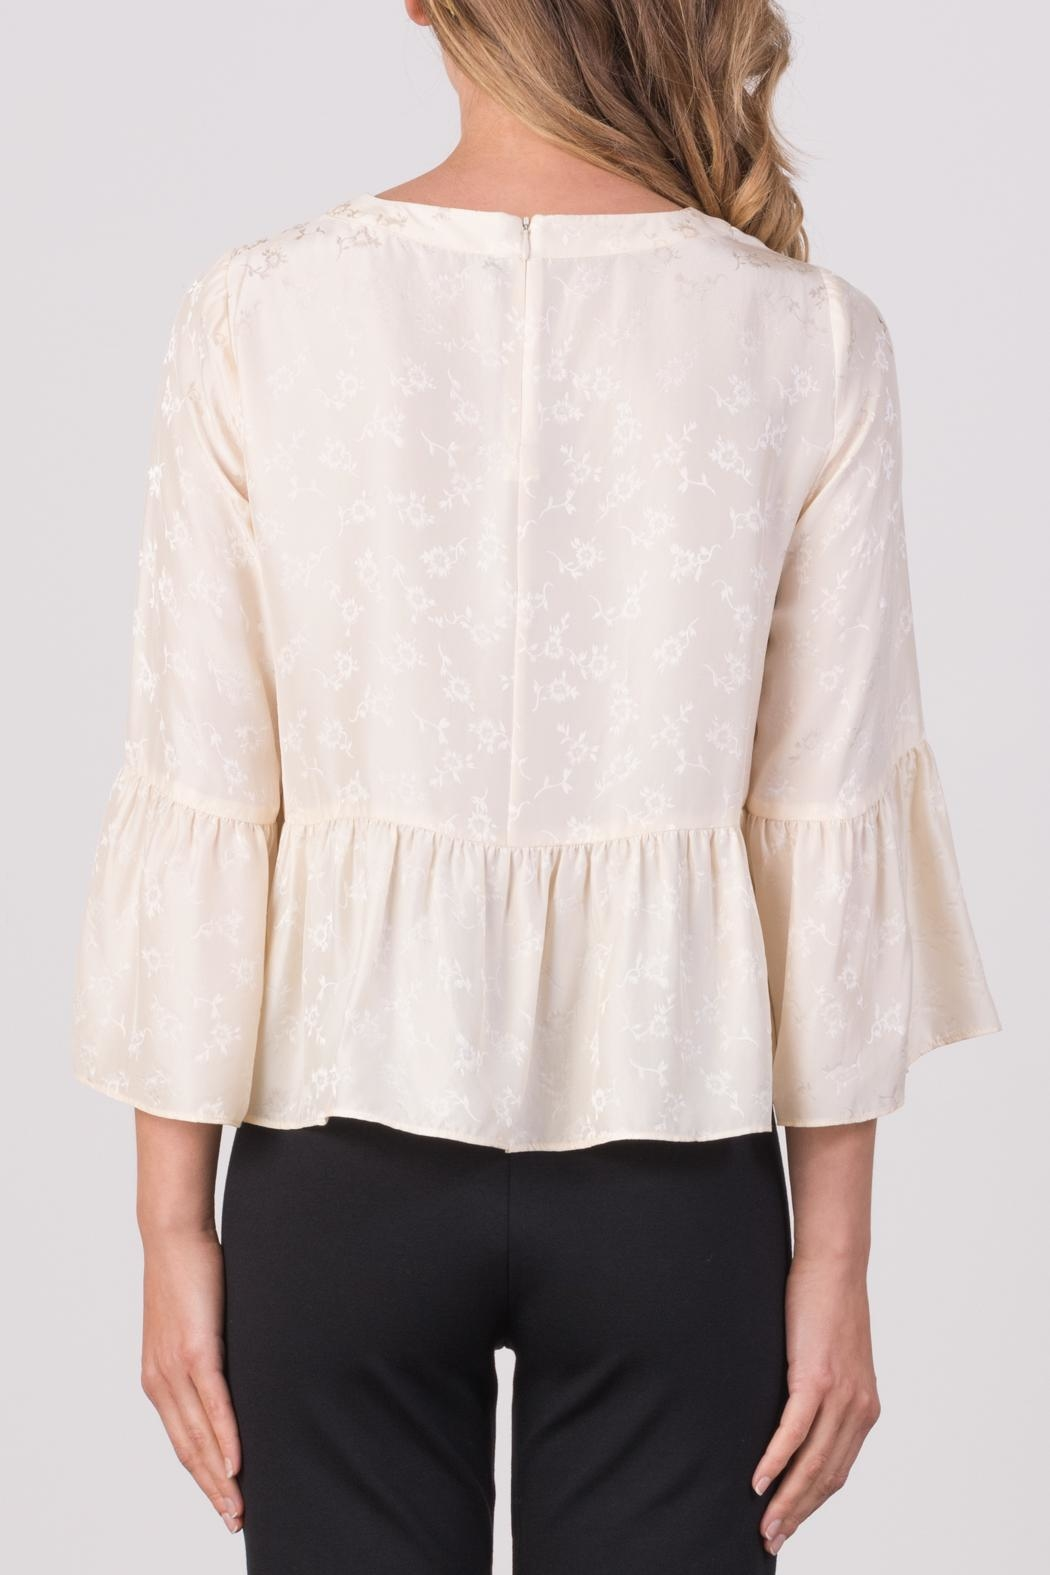 Margaret O'Leary Pippa Top - Back Cropped Image